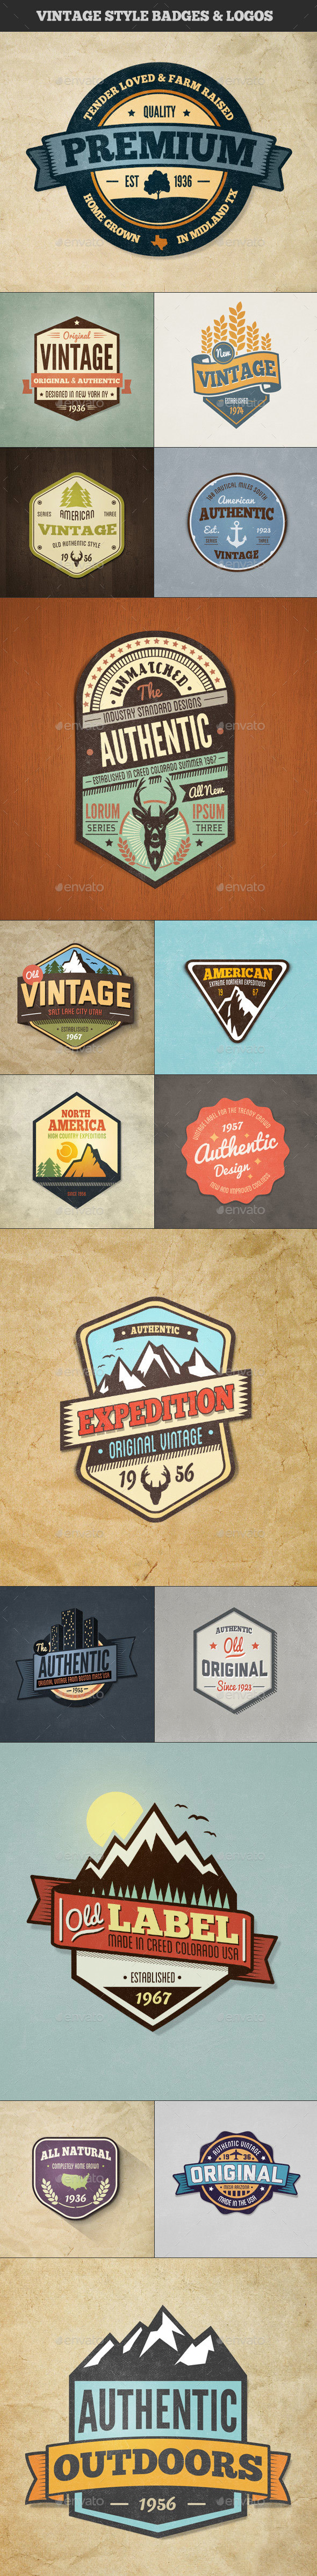 Vintage Style Badges and Logos - Colored Vol 3 - Badges & Stickers Web Elements